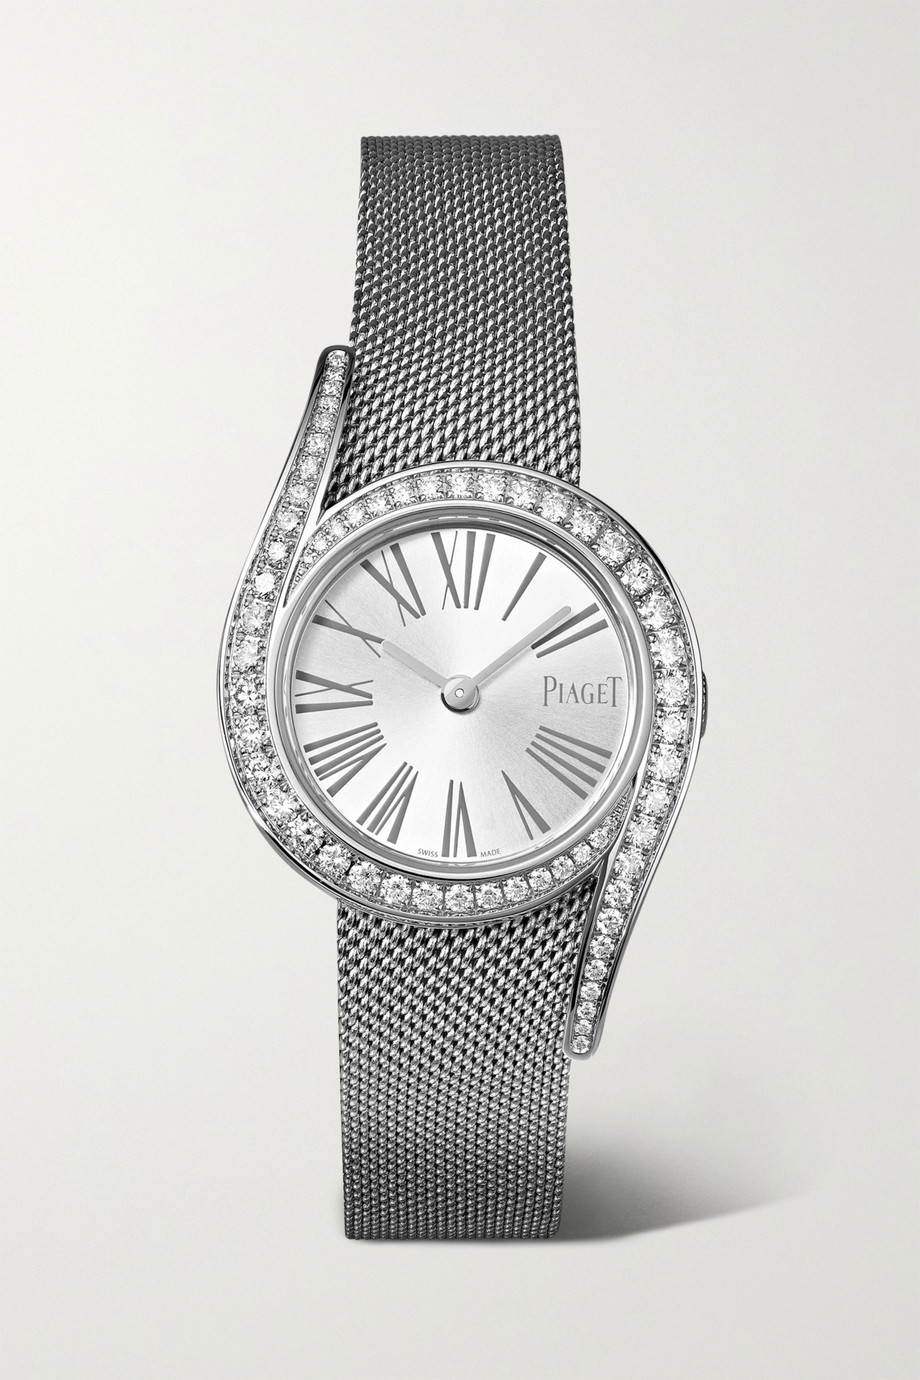 Piaget Montre en or blanc 18 carats et diamants Limelight Gala 26 mm